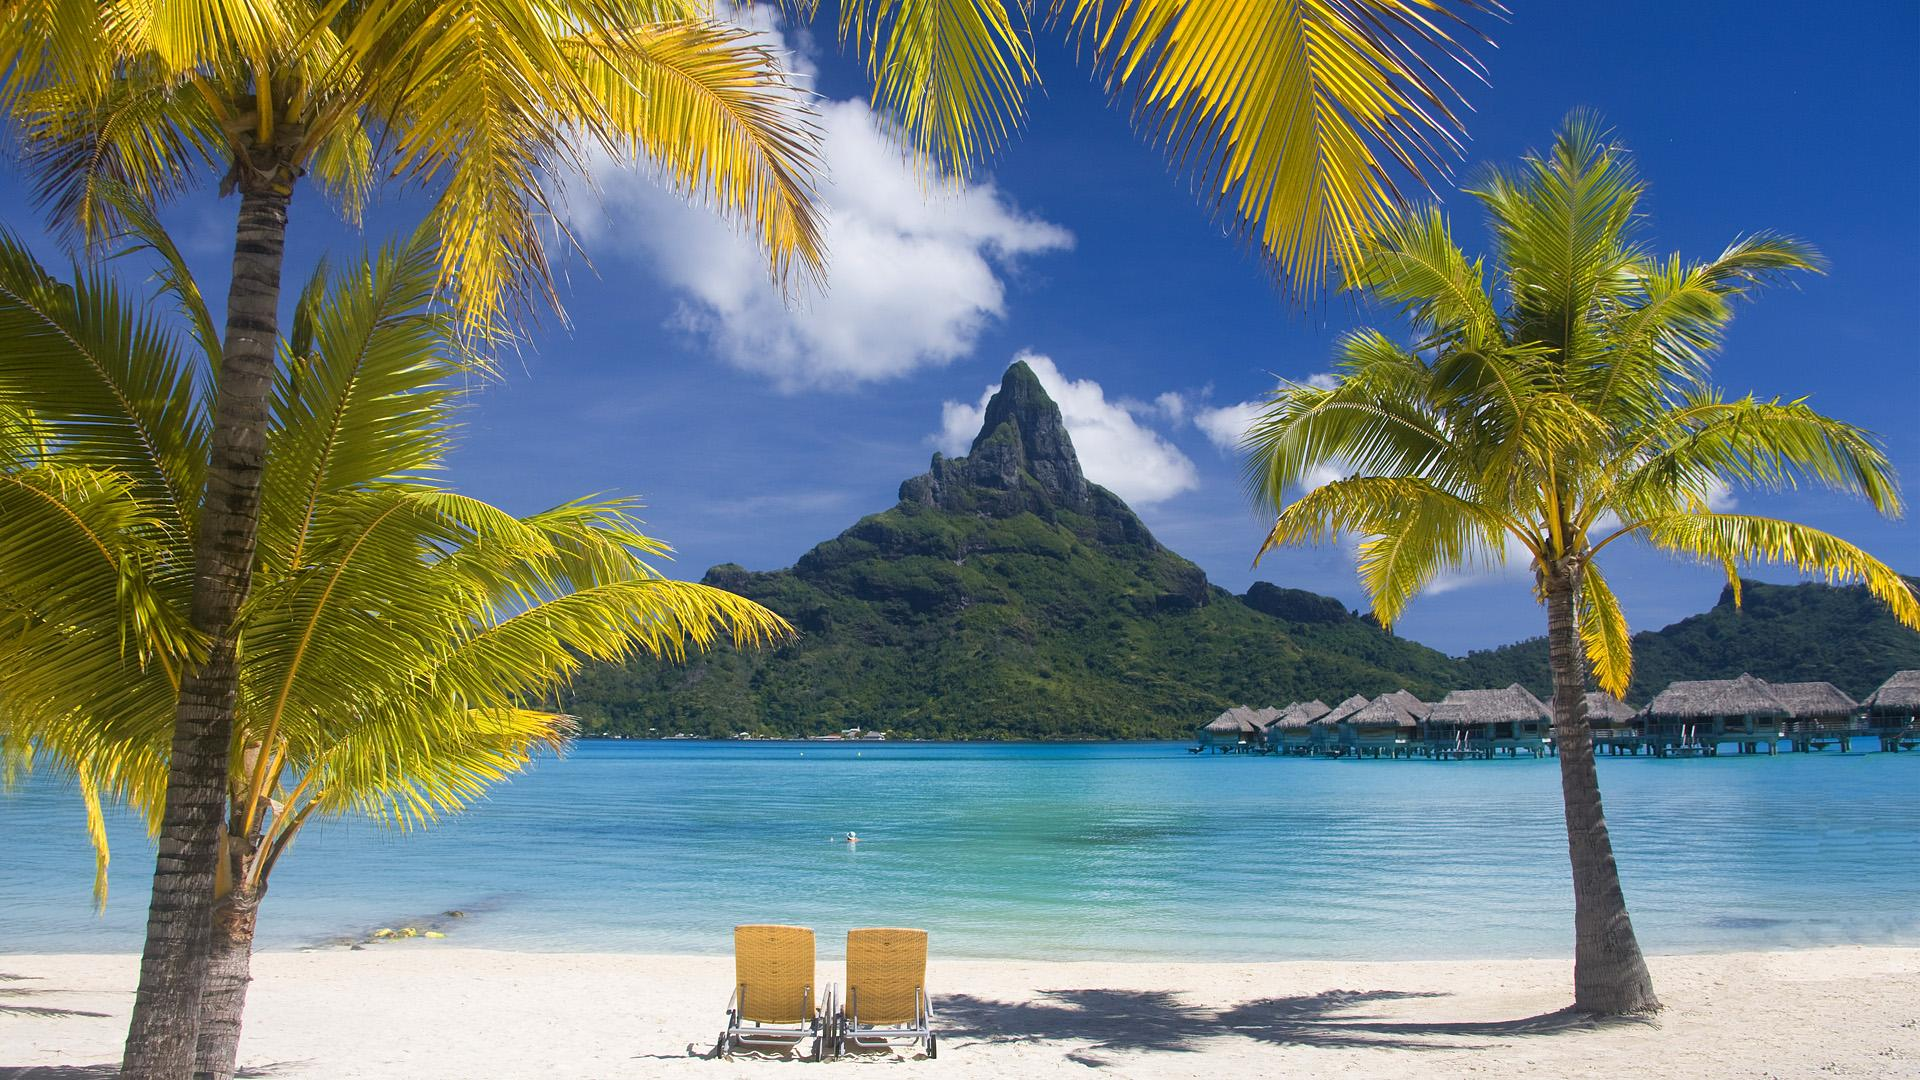 Bora Bora High Resolution Wallpaper   Travel HD Wallpapers 1920x1080